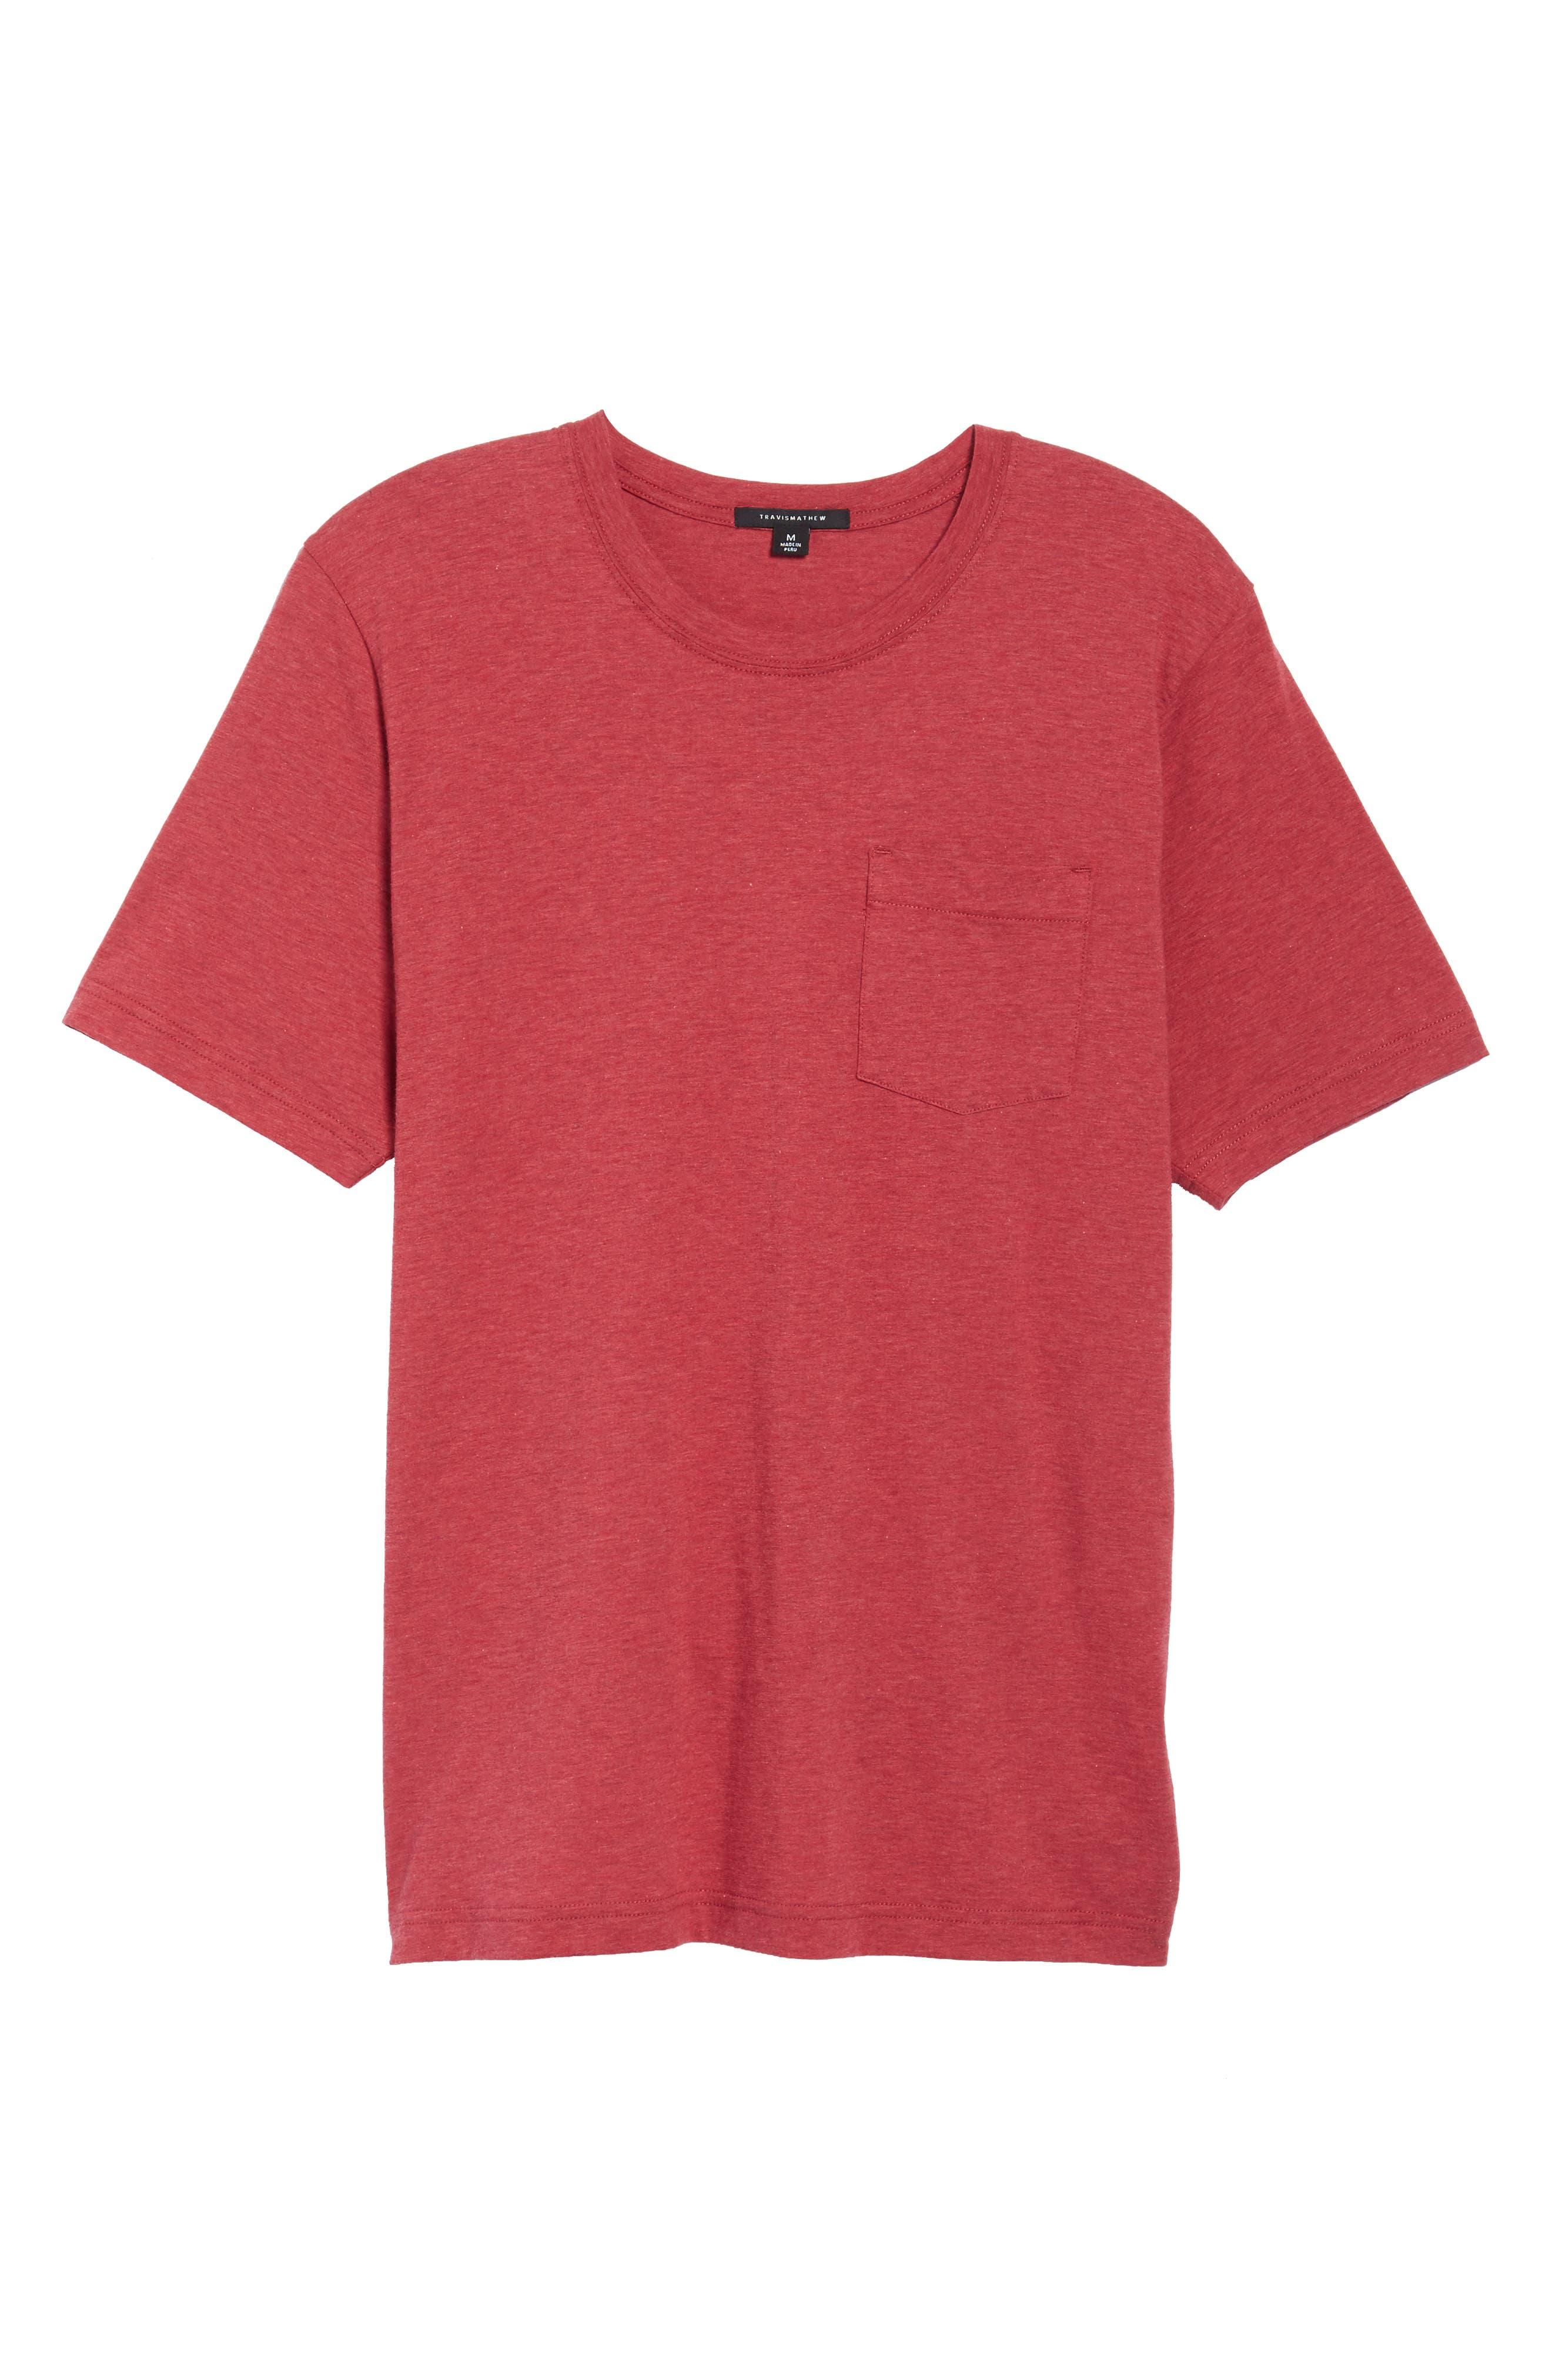 Hedrick T-Shirt,                         Main,                         color, Heather Ox Blood